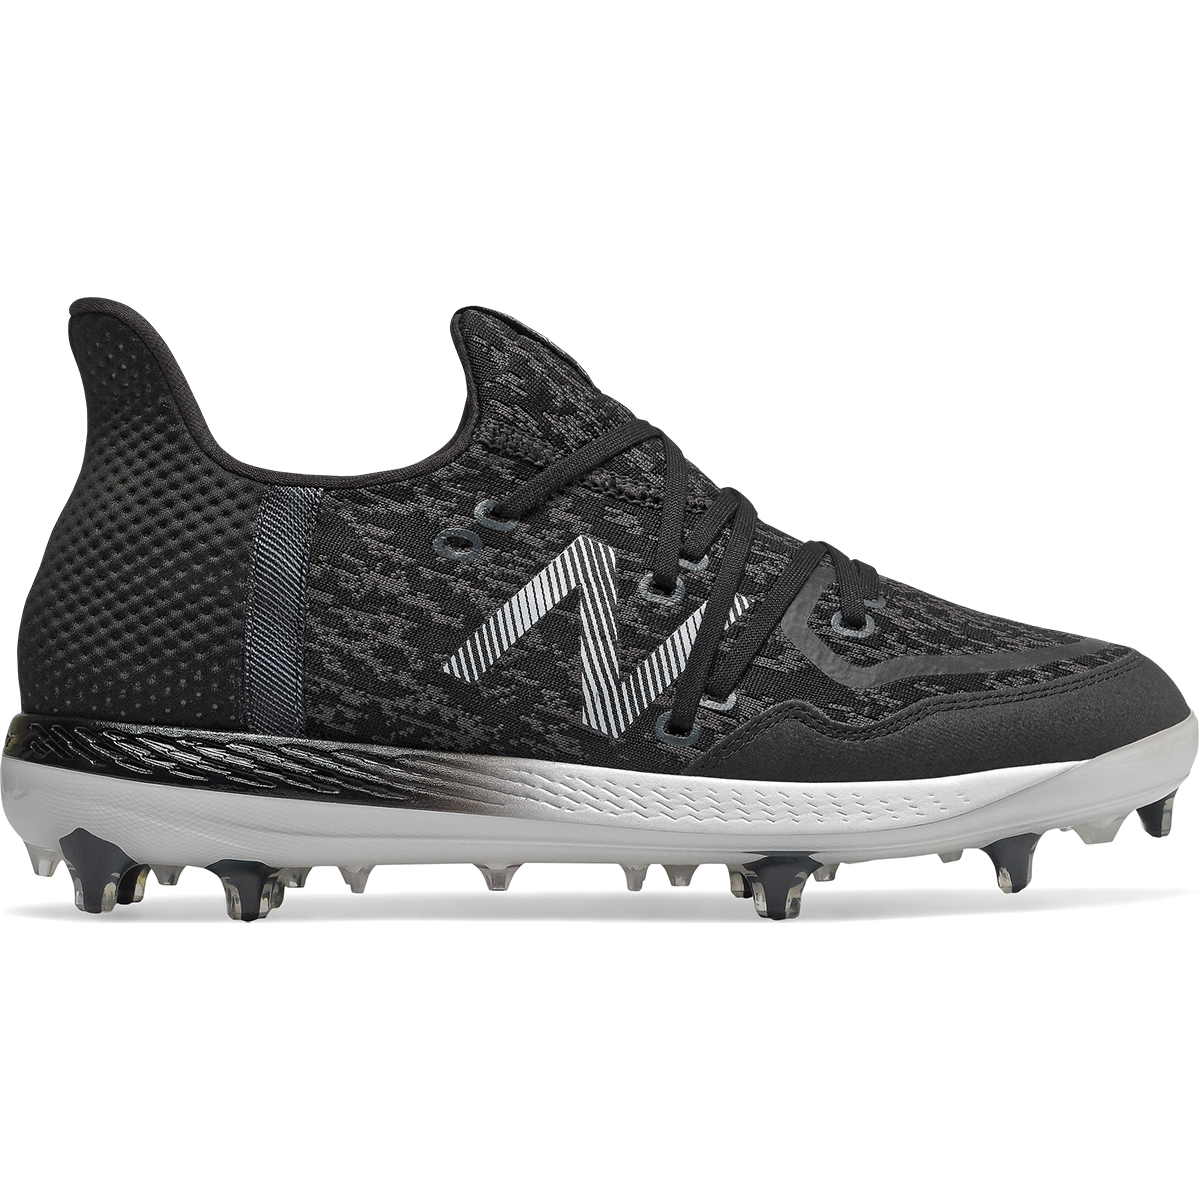 New Balance Lindor Cypher 12 Men's Low Tpu Molded Baseball Cleats | Size 8.5 | Black